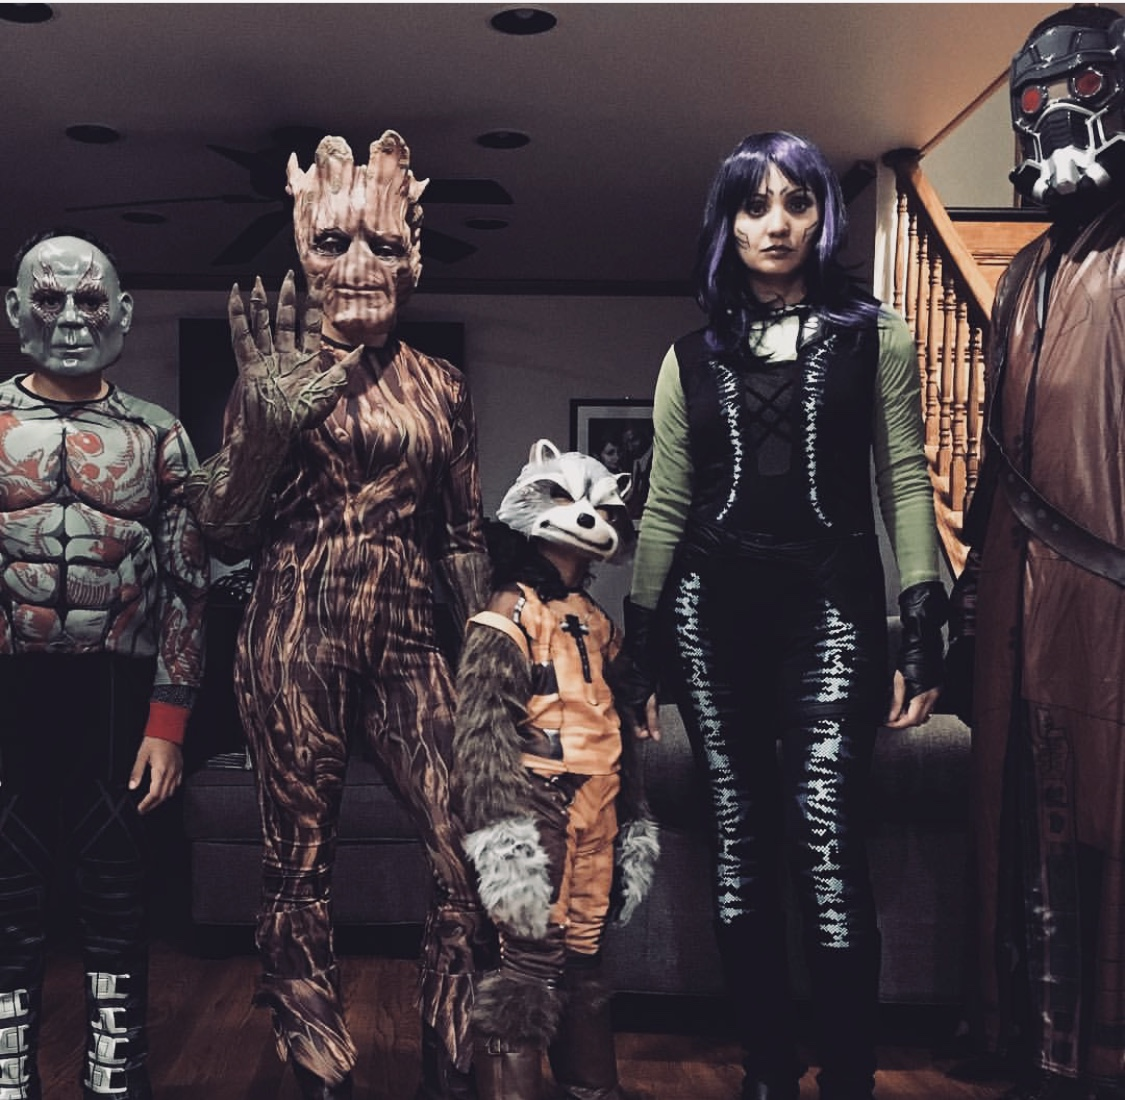 Halloween 2016: The Gurdians of the Galaxy